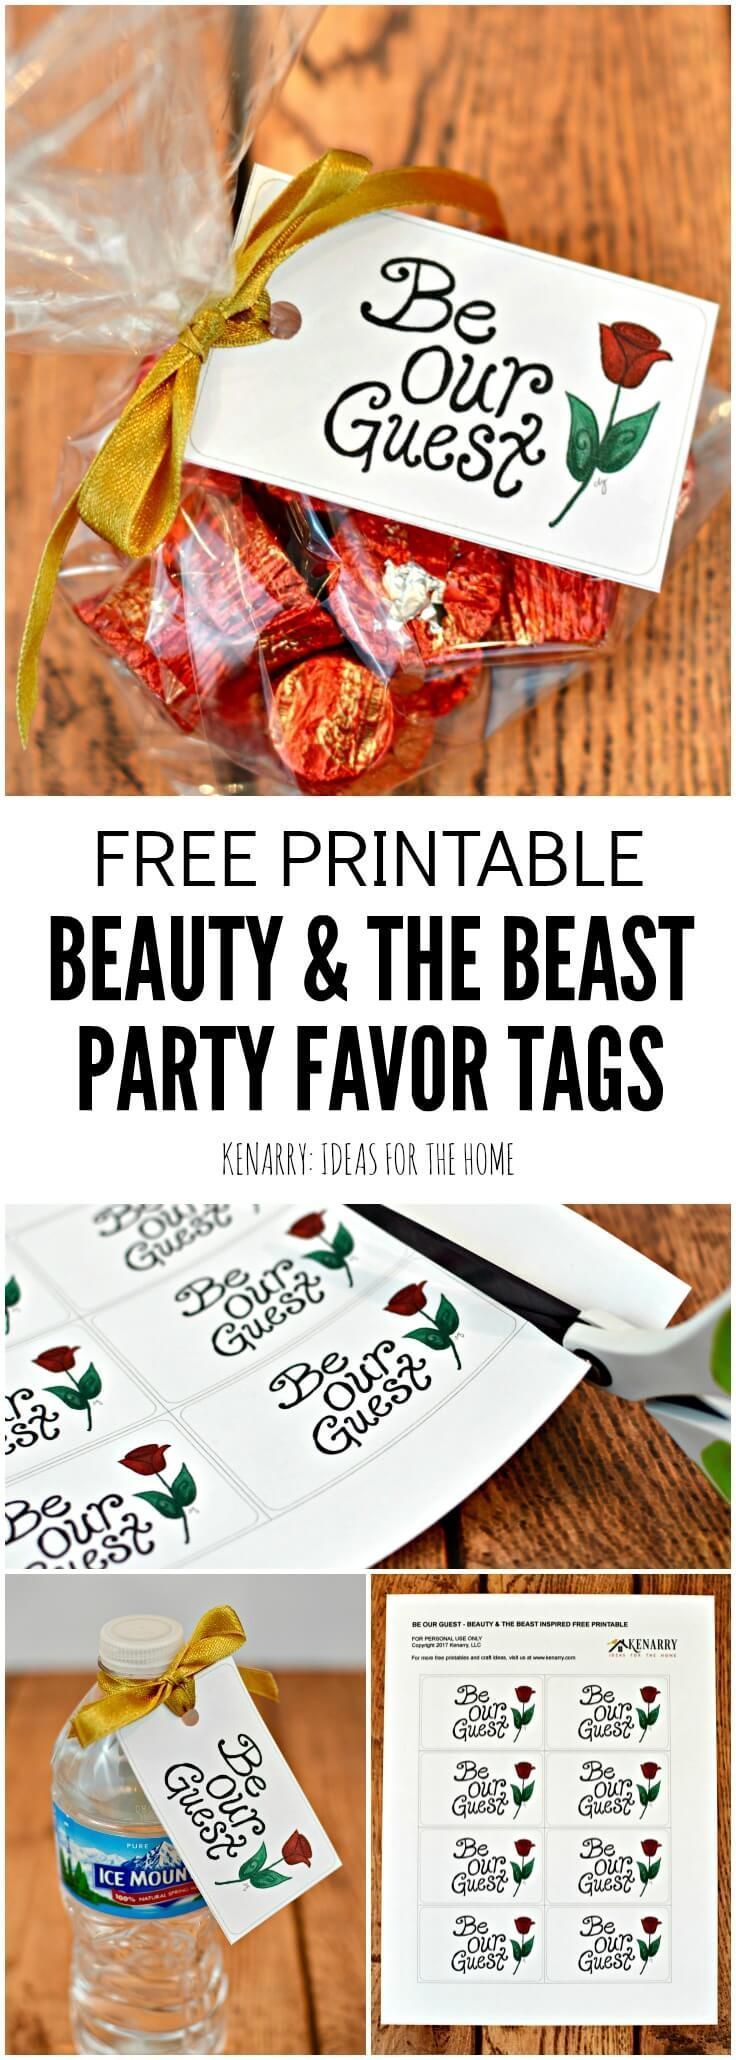 Attach these free printable Be Our Guest tags to Beauty and the Beast party favors for your Disney themed wedding or Disney princess birthday party -- or tie to treats for people staying in your guest room.